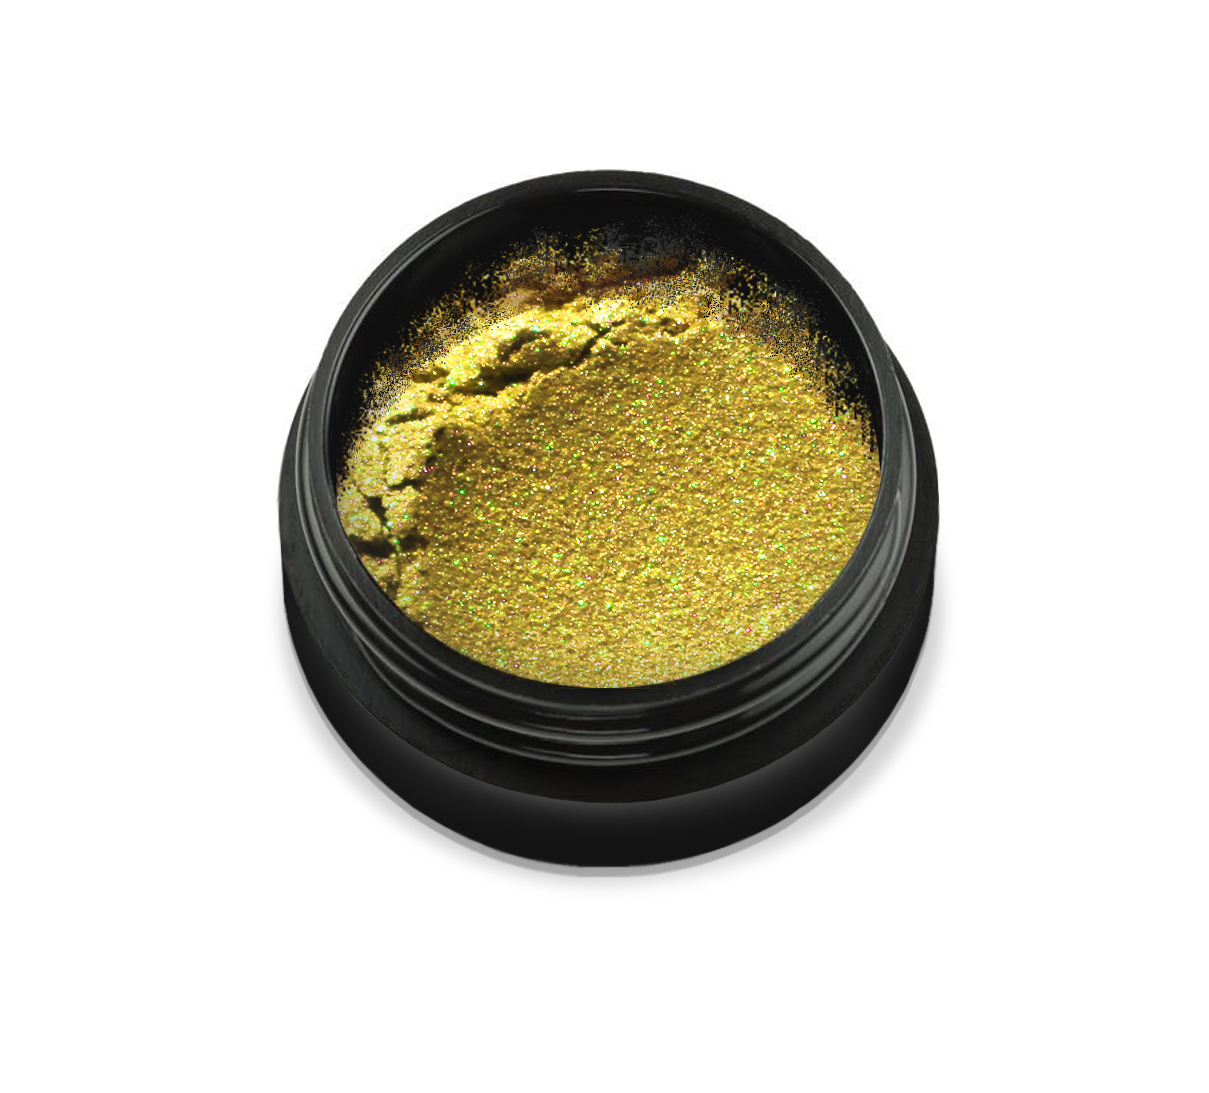 "6111 Pudra cu pigmenti 'Didier Lab"", flash yellow 2,5g/Pigment powder 'Didier Lab"", flash yellow"